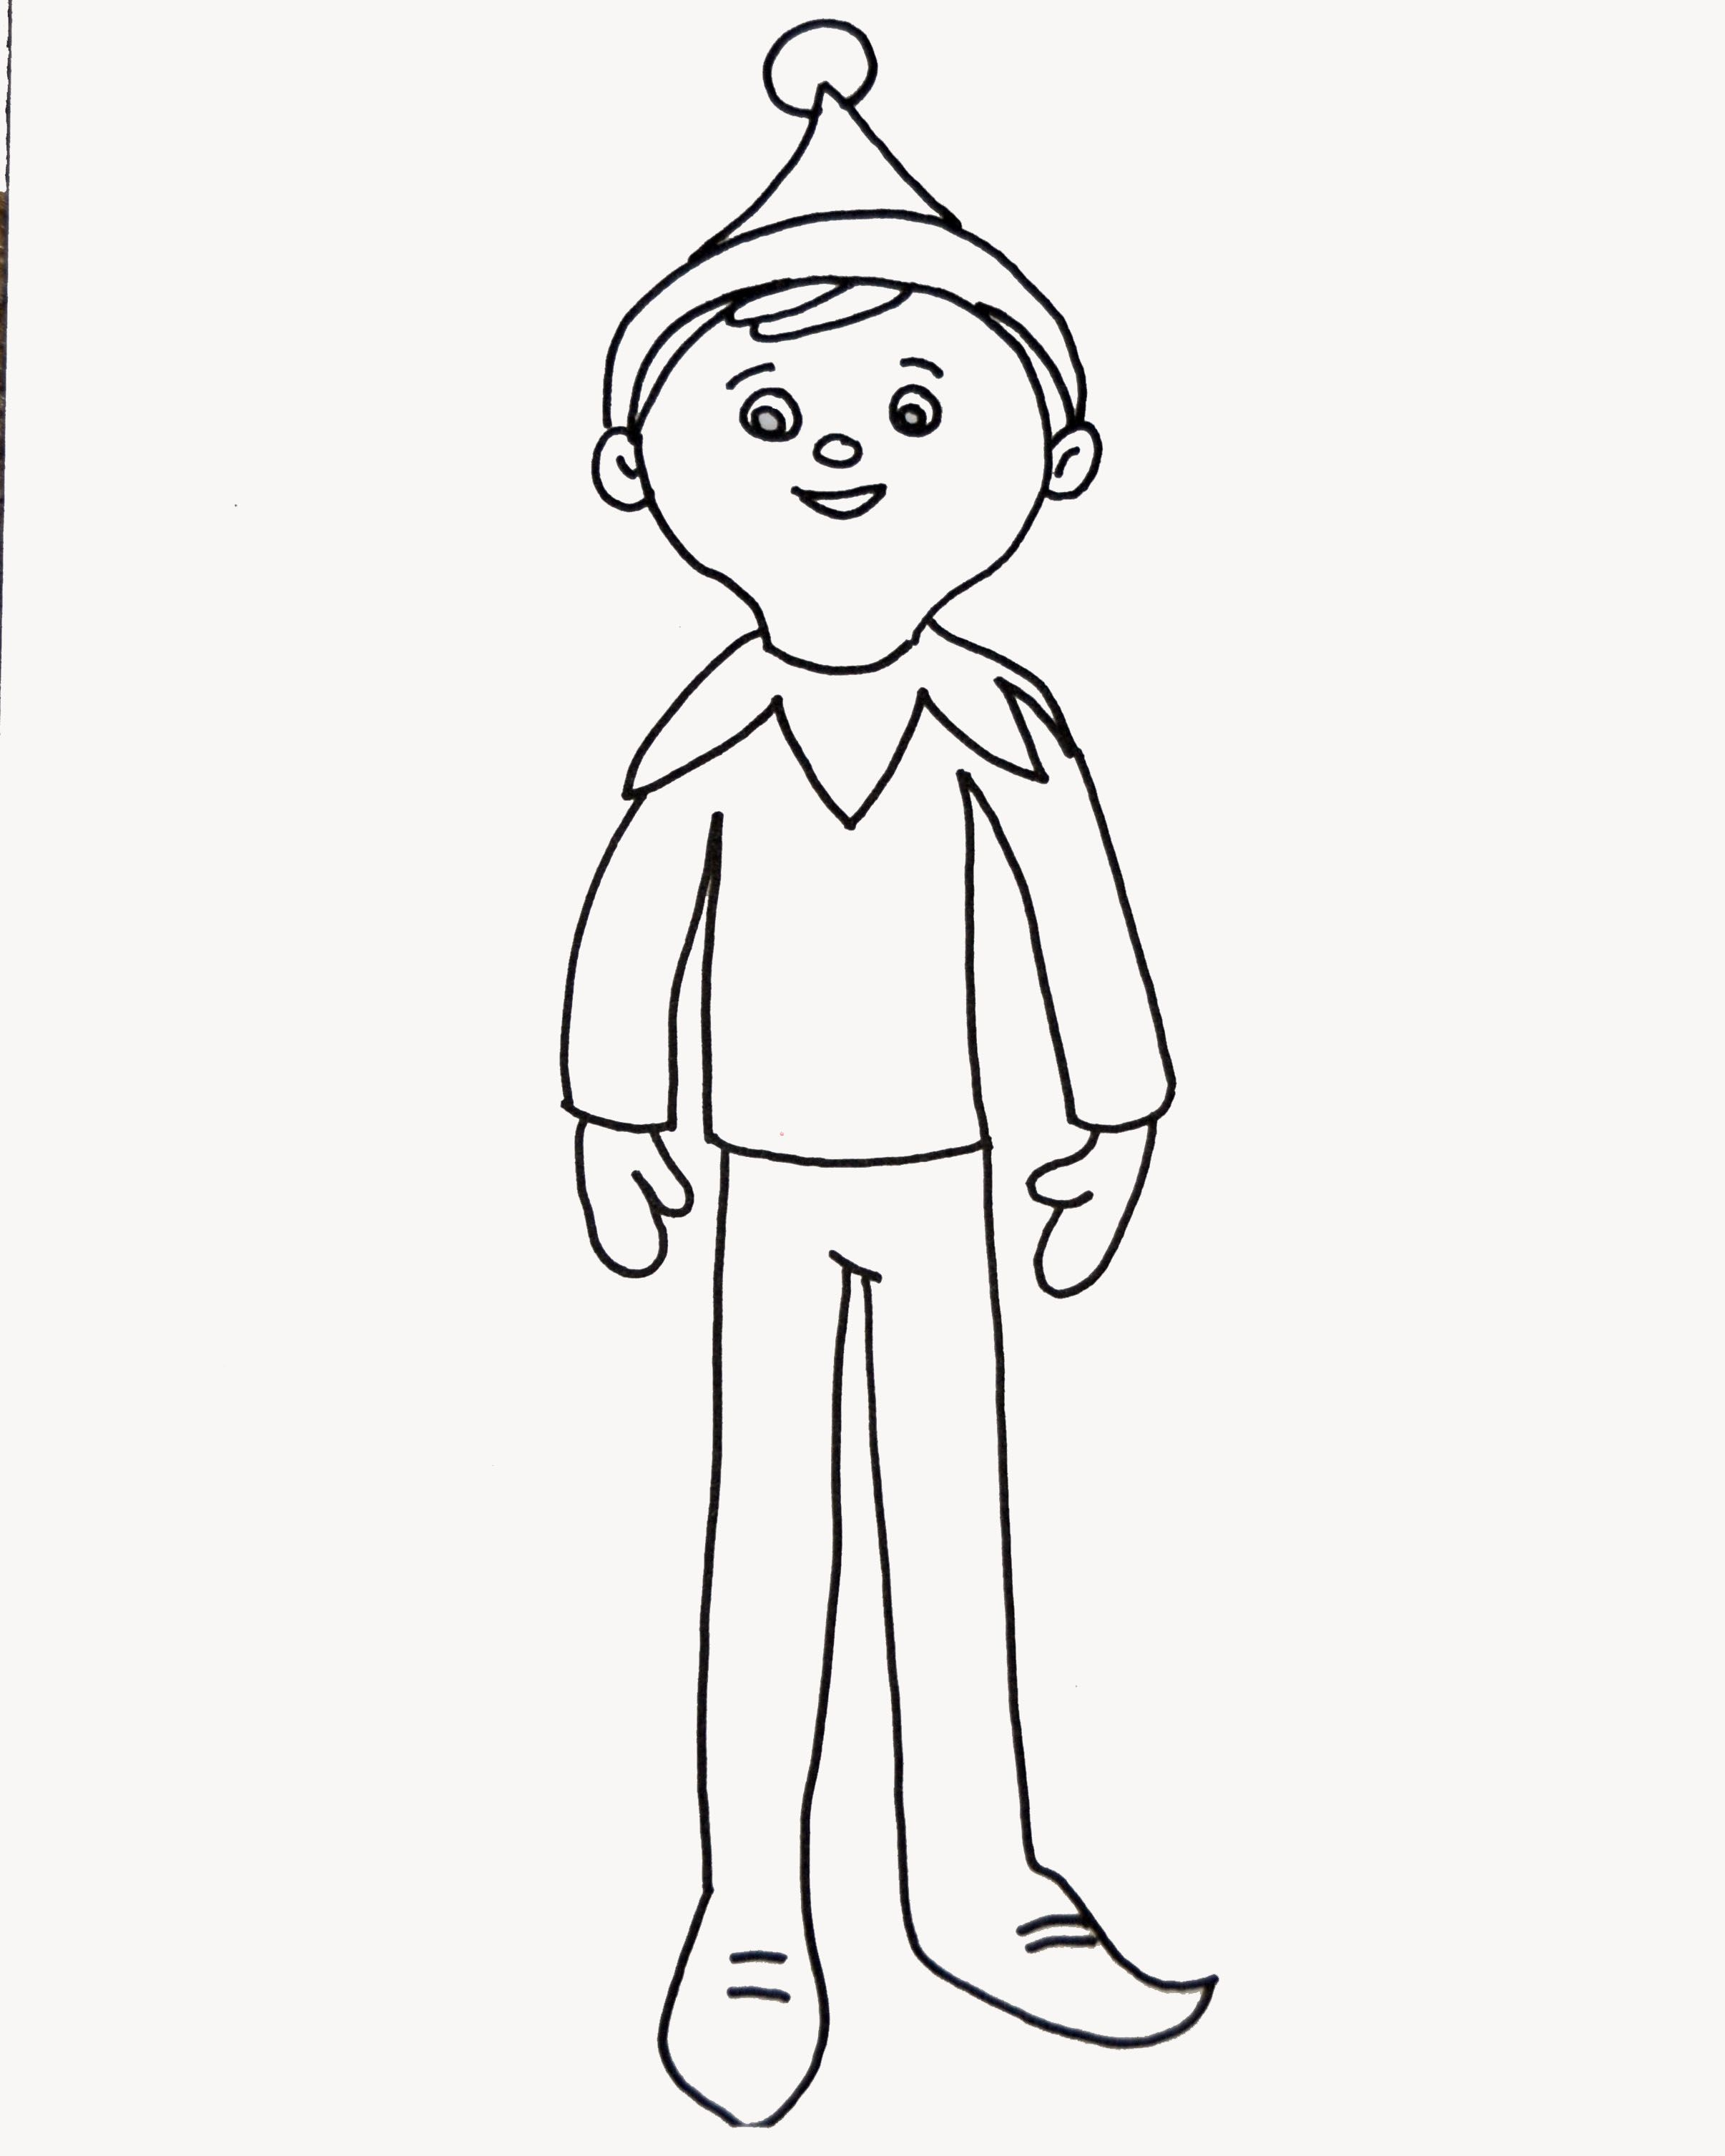 coloring pages girl elf - photo#9